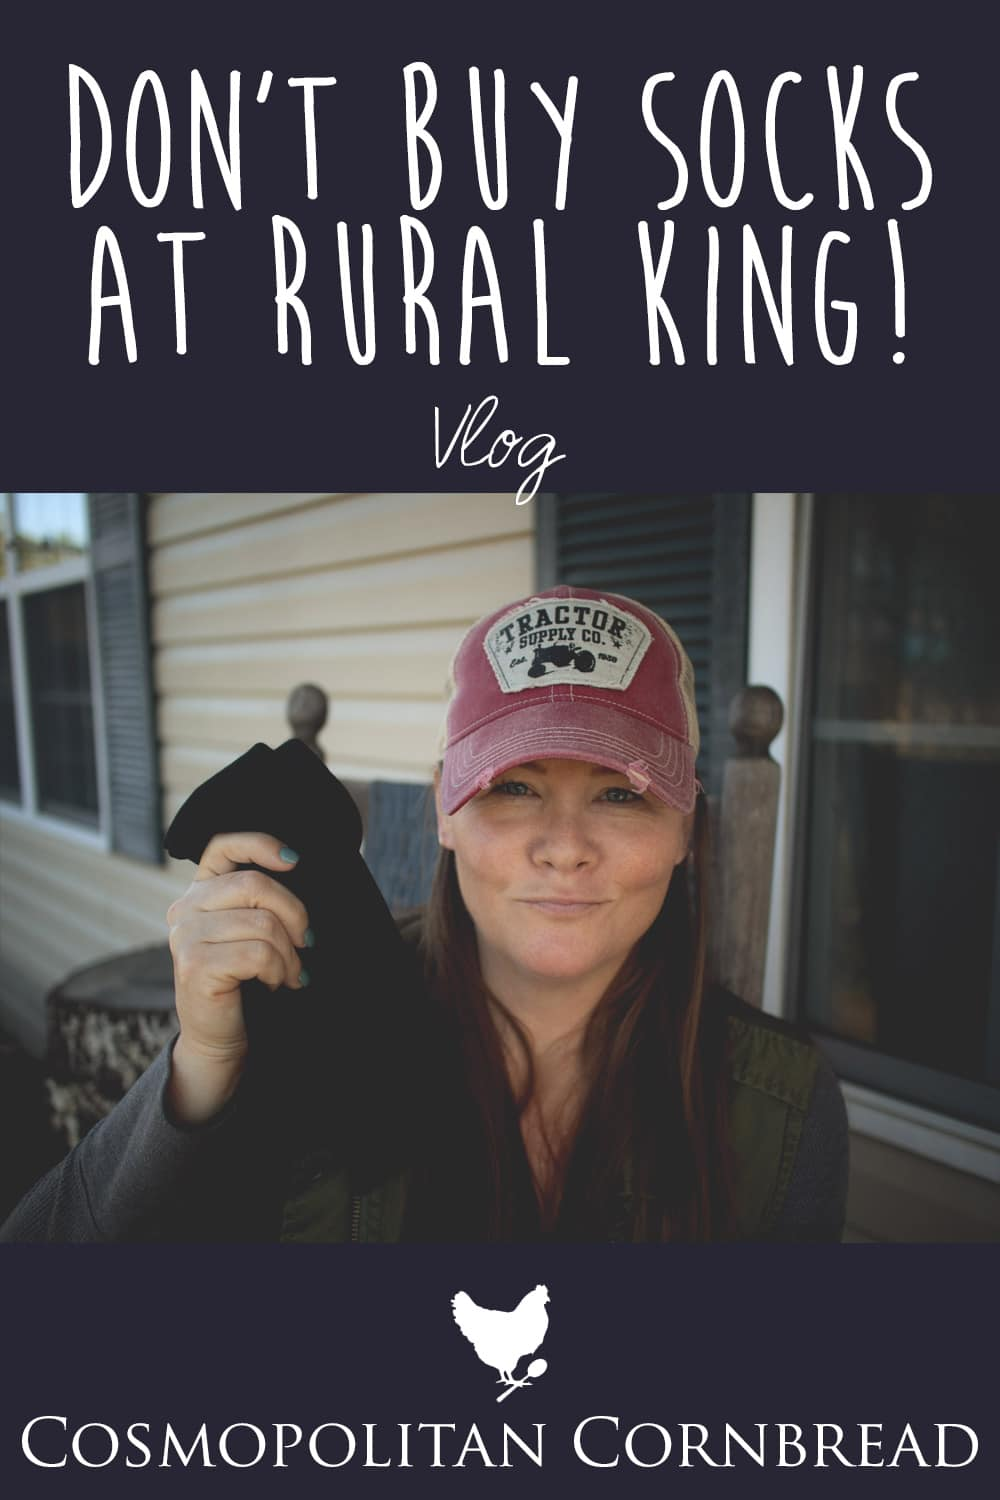 It's was an adventurous day. First I went horseback riding, and things didn't exactly go as expected. Then....I shared why you shouldn't buy socks at Rural King.